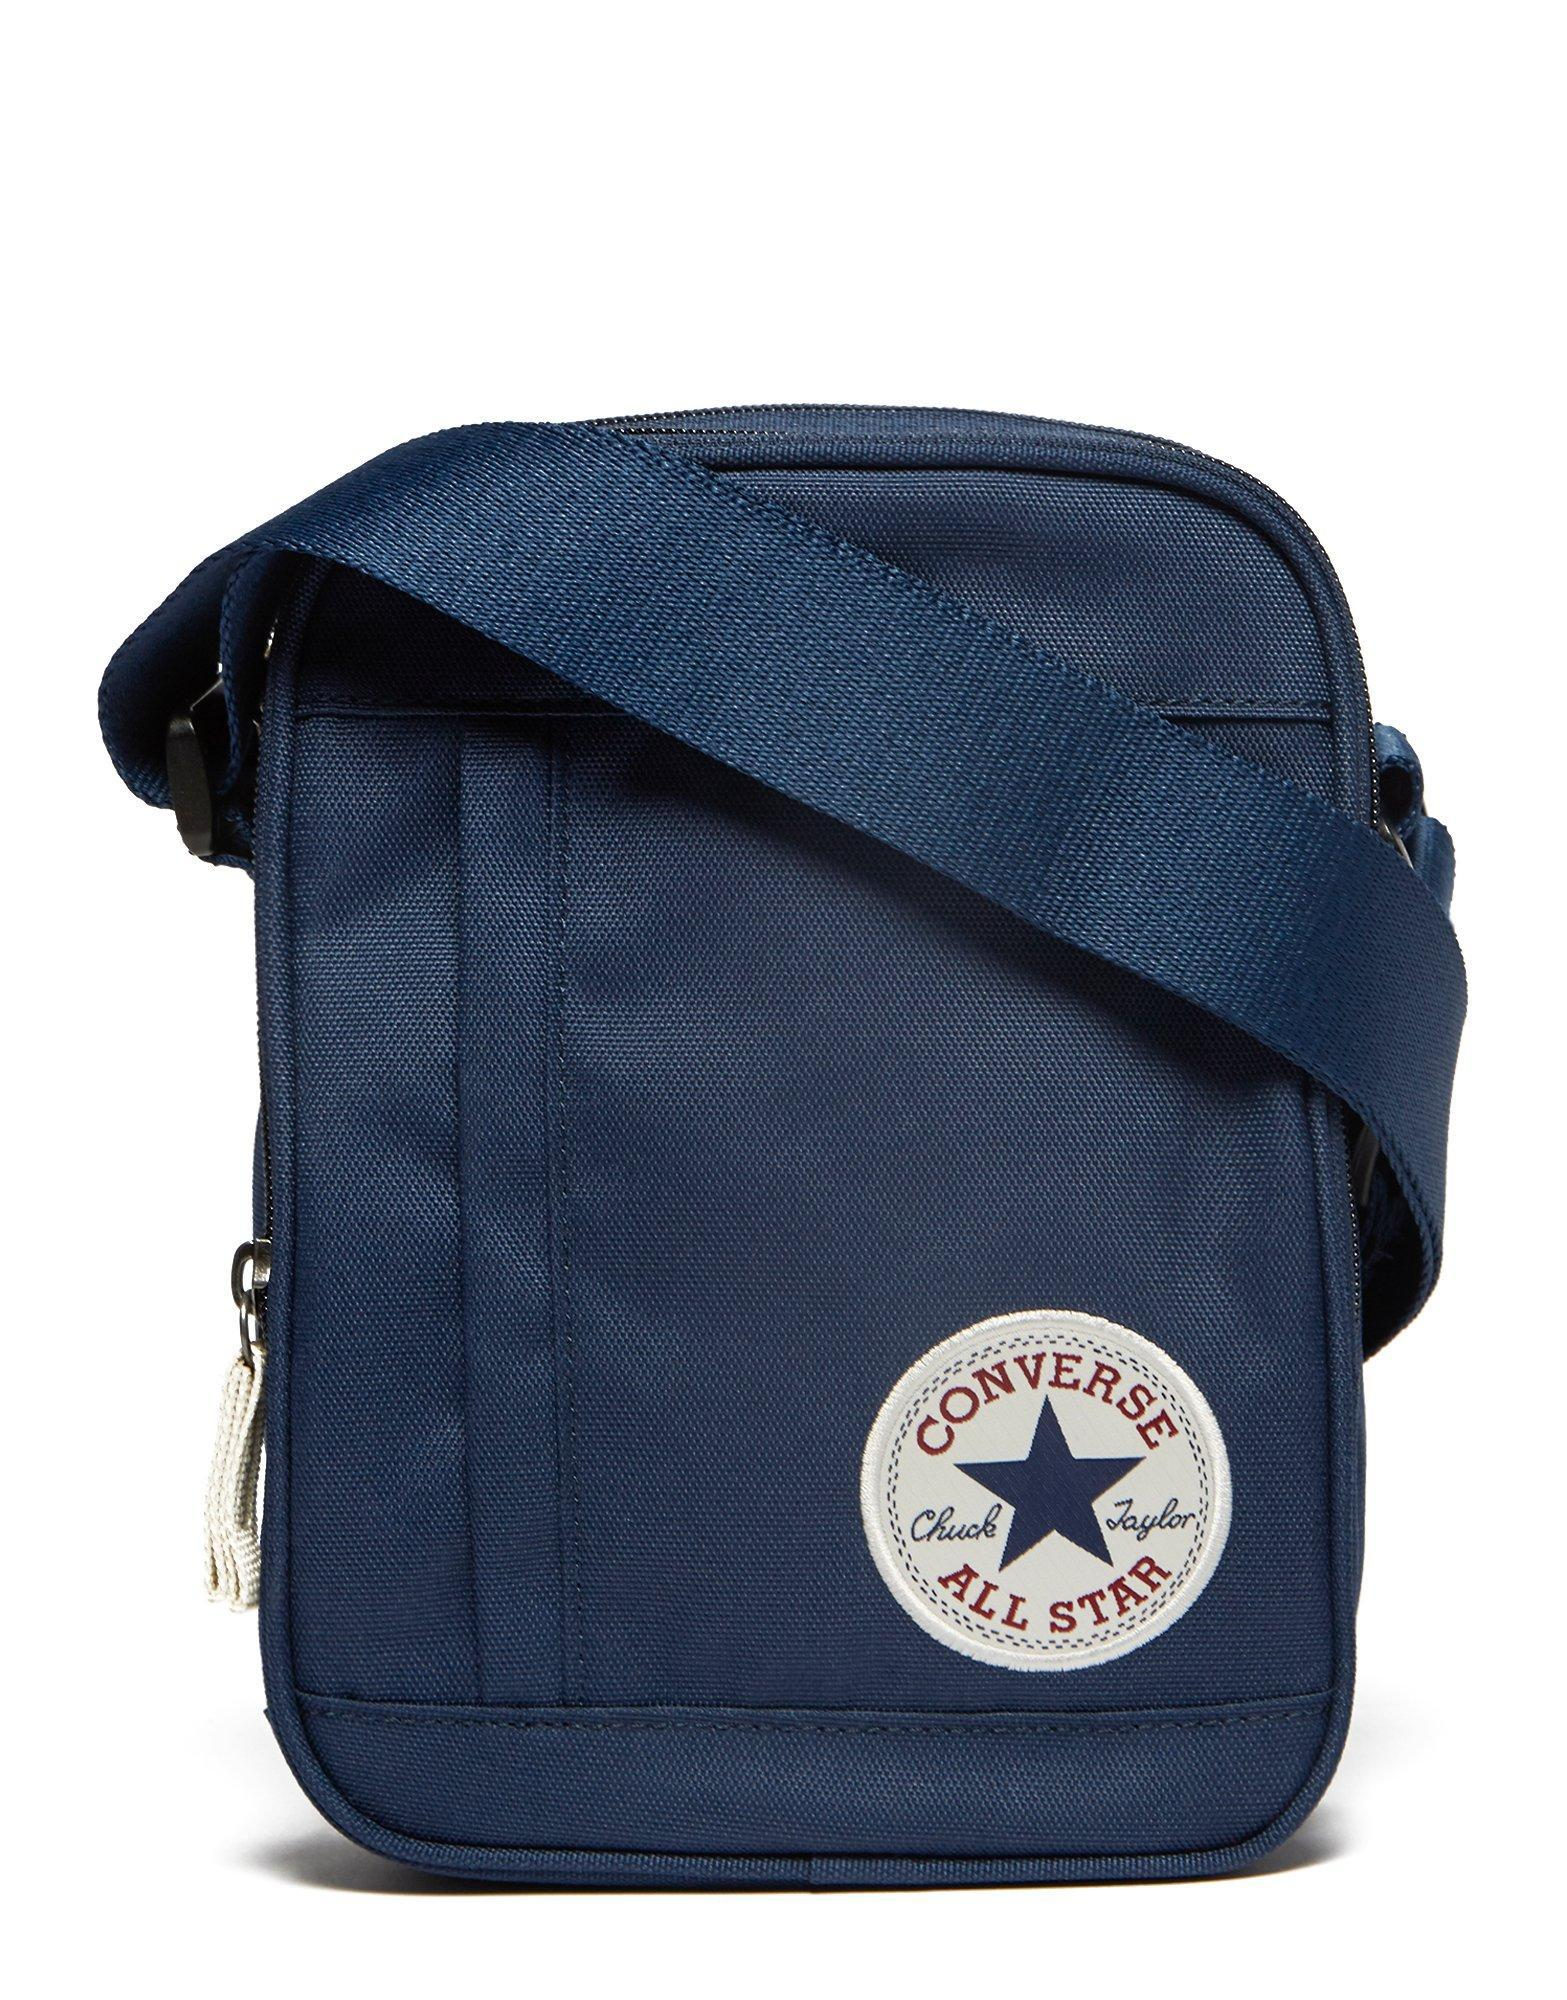 8cbcdf42d7 Converse Core Small Items Bag in Blue for Men - Lyst